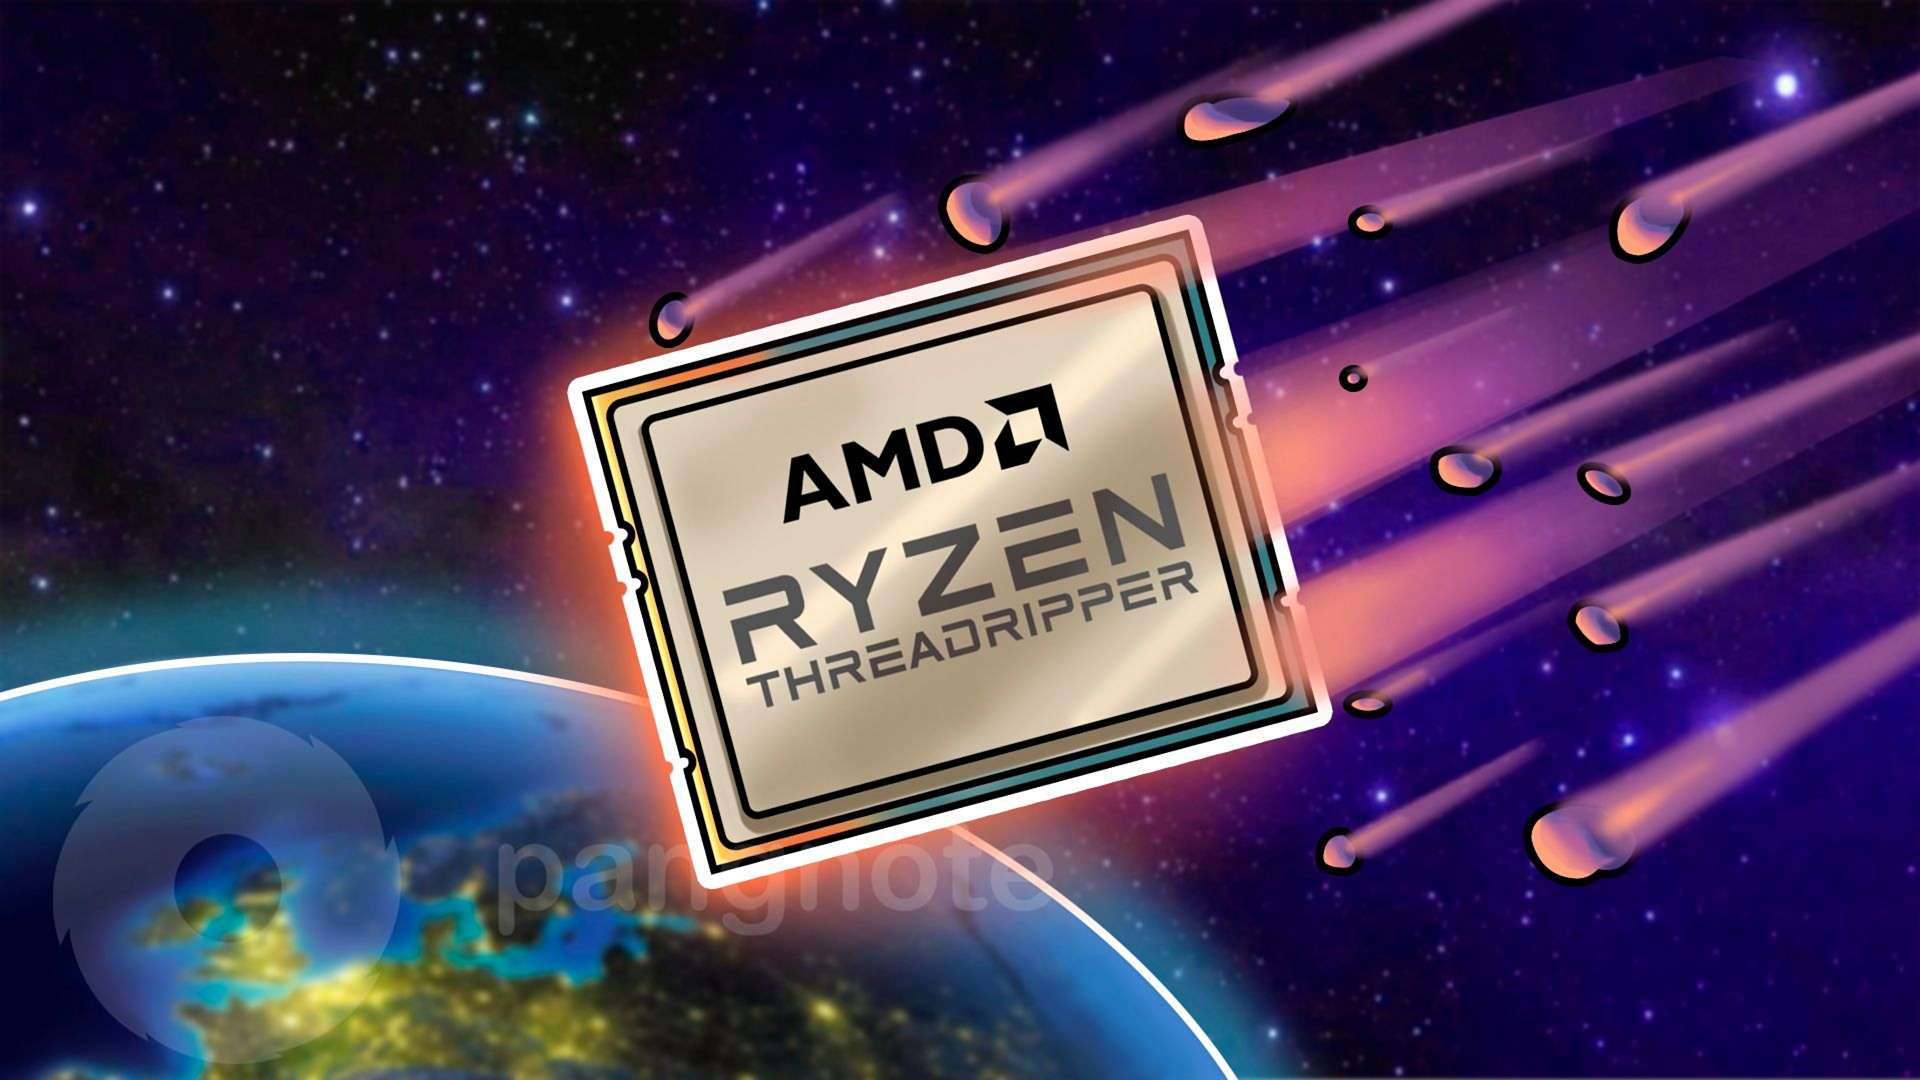 Threadripper 2: 32-core desktop processor from AMD